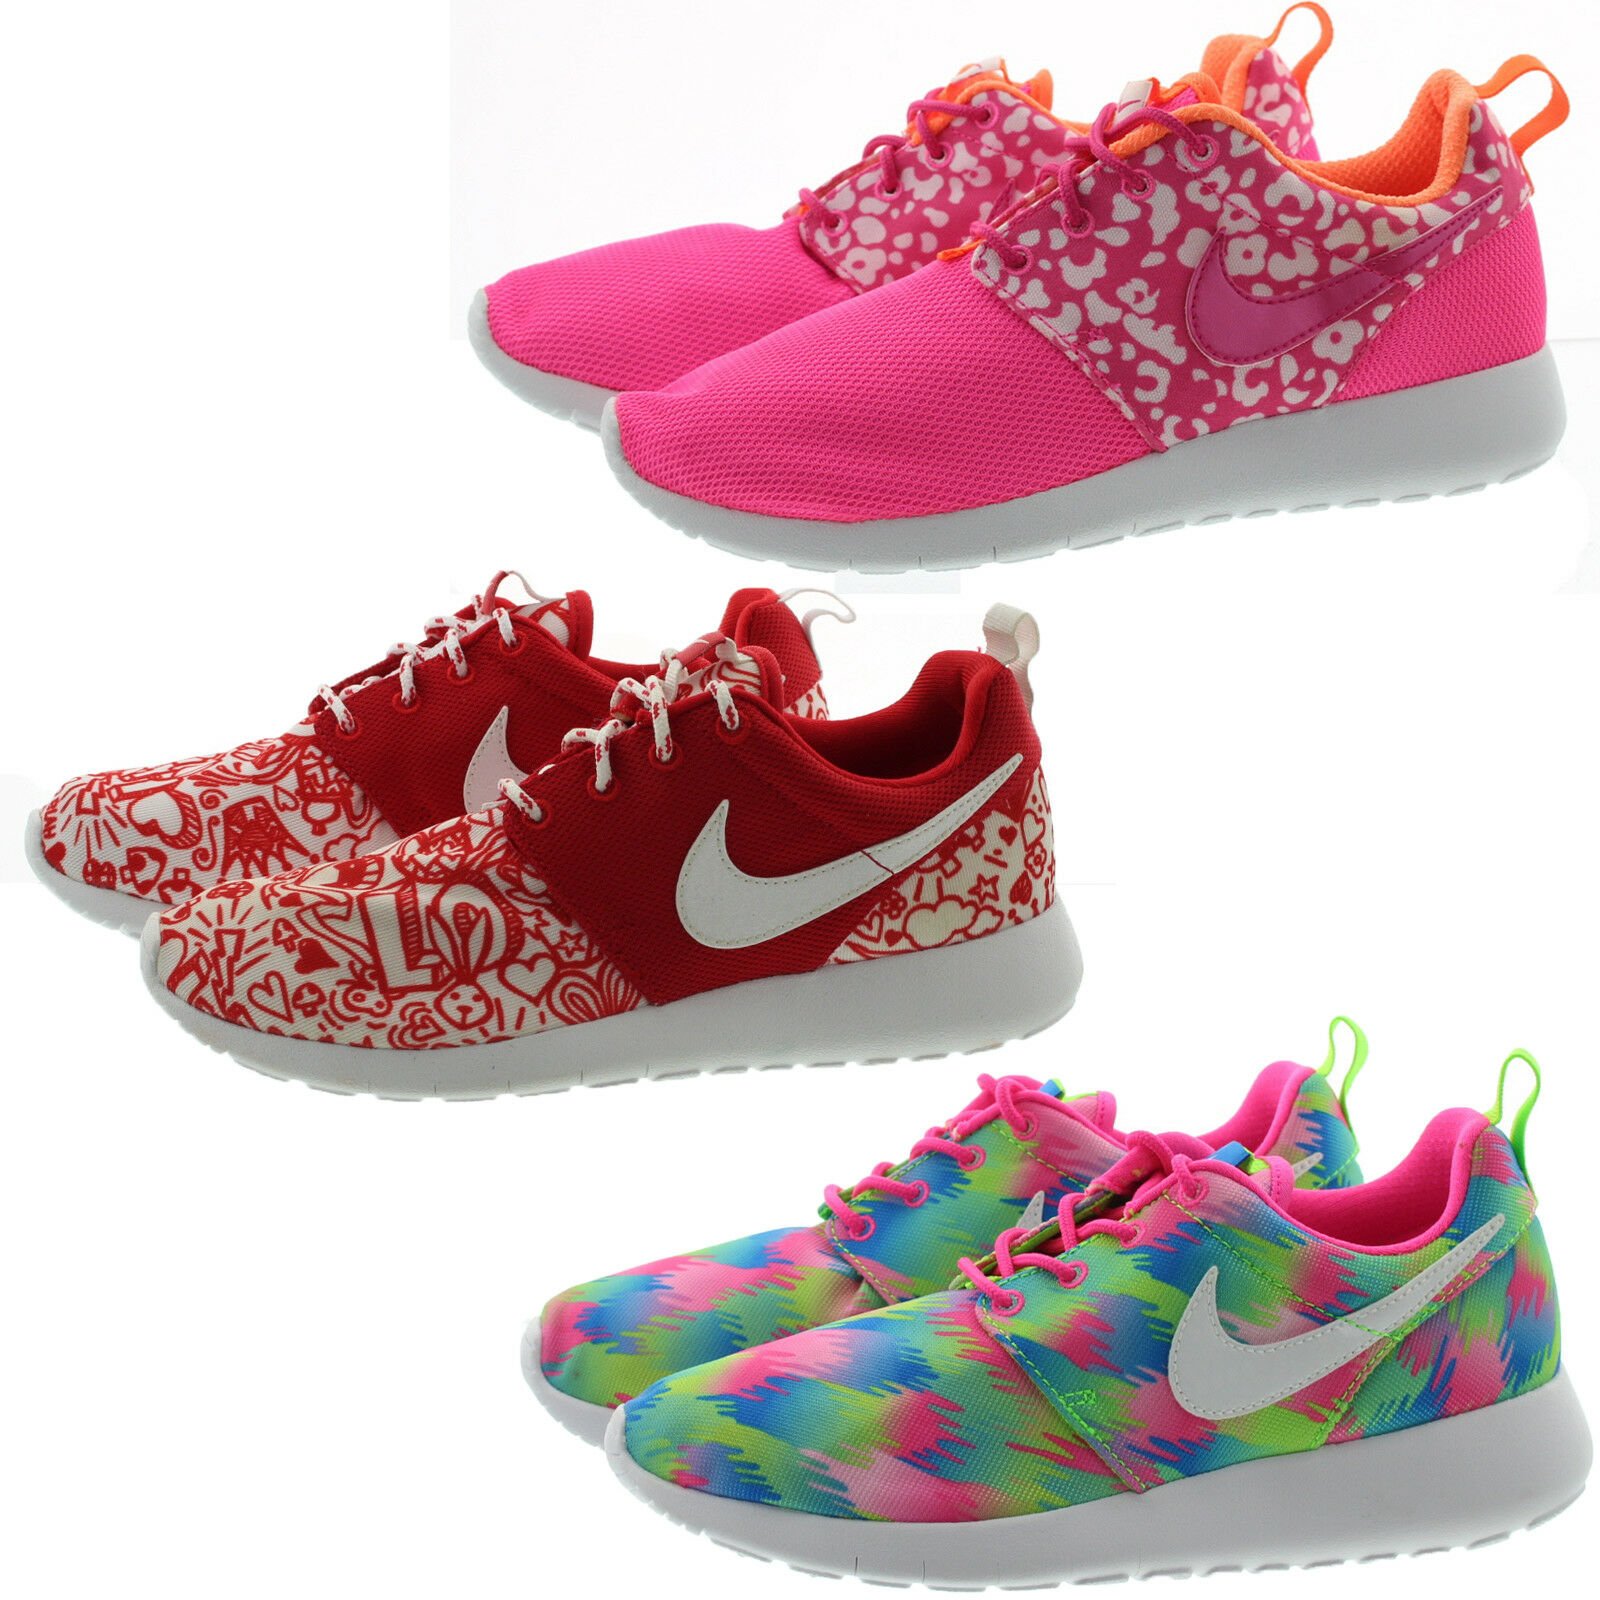 d523f6002b6 Nike Roshe One Print GS Multi-color Rosherun Kids Youth Running Shoes  677784-607 5 Y for sale online